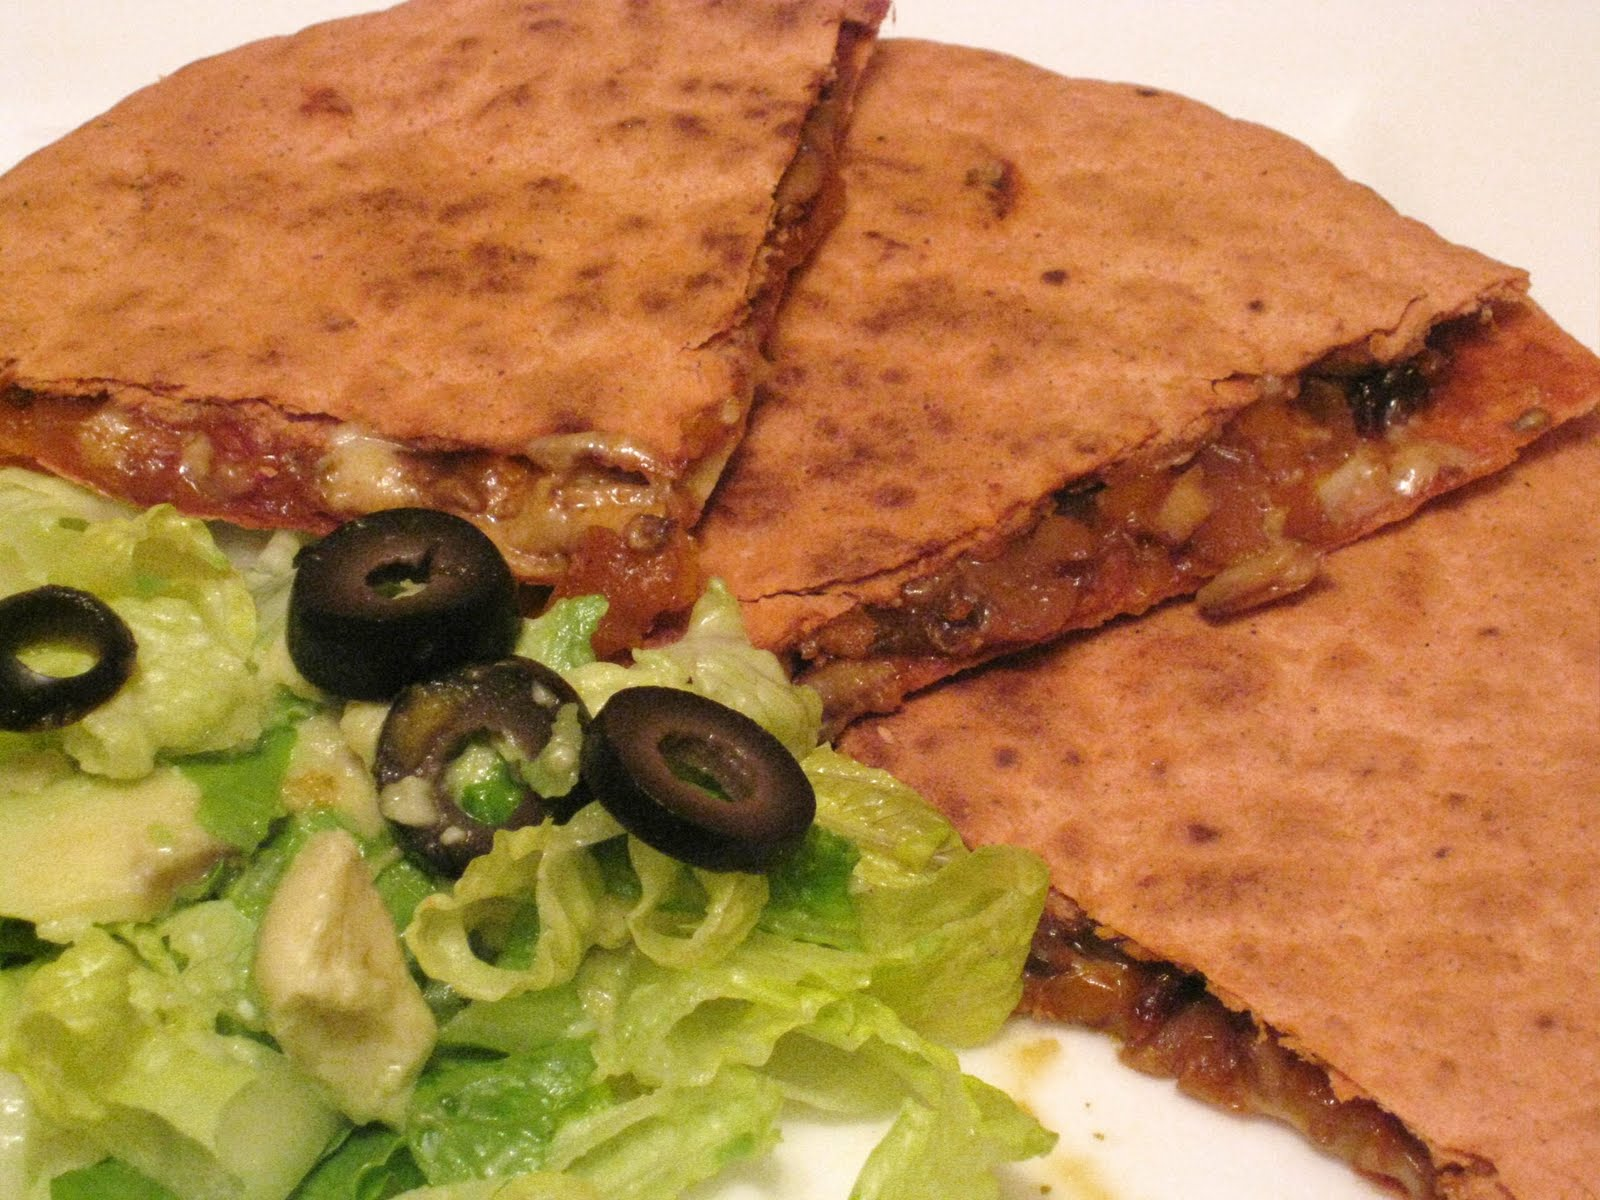 The Vegetarian Way: Chipotle roasted vegetable quesadilla